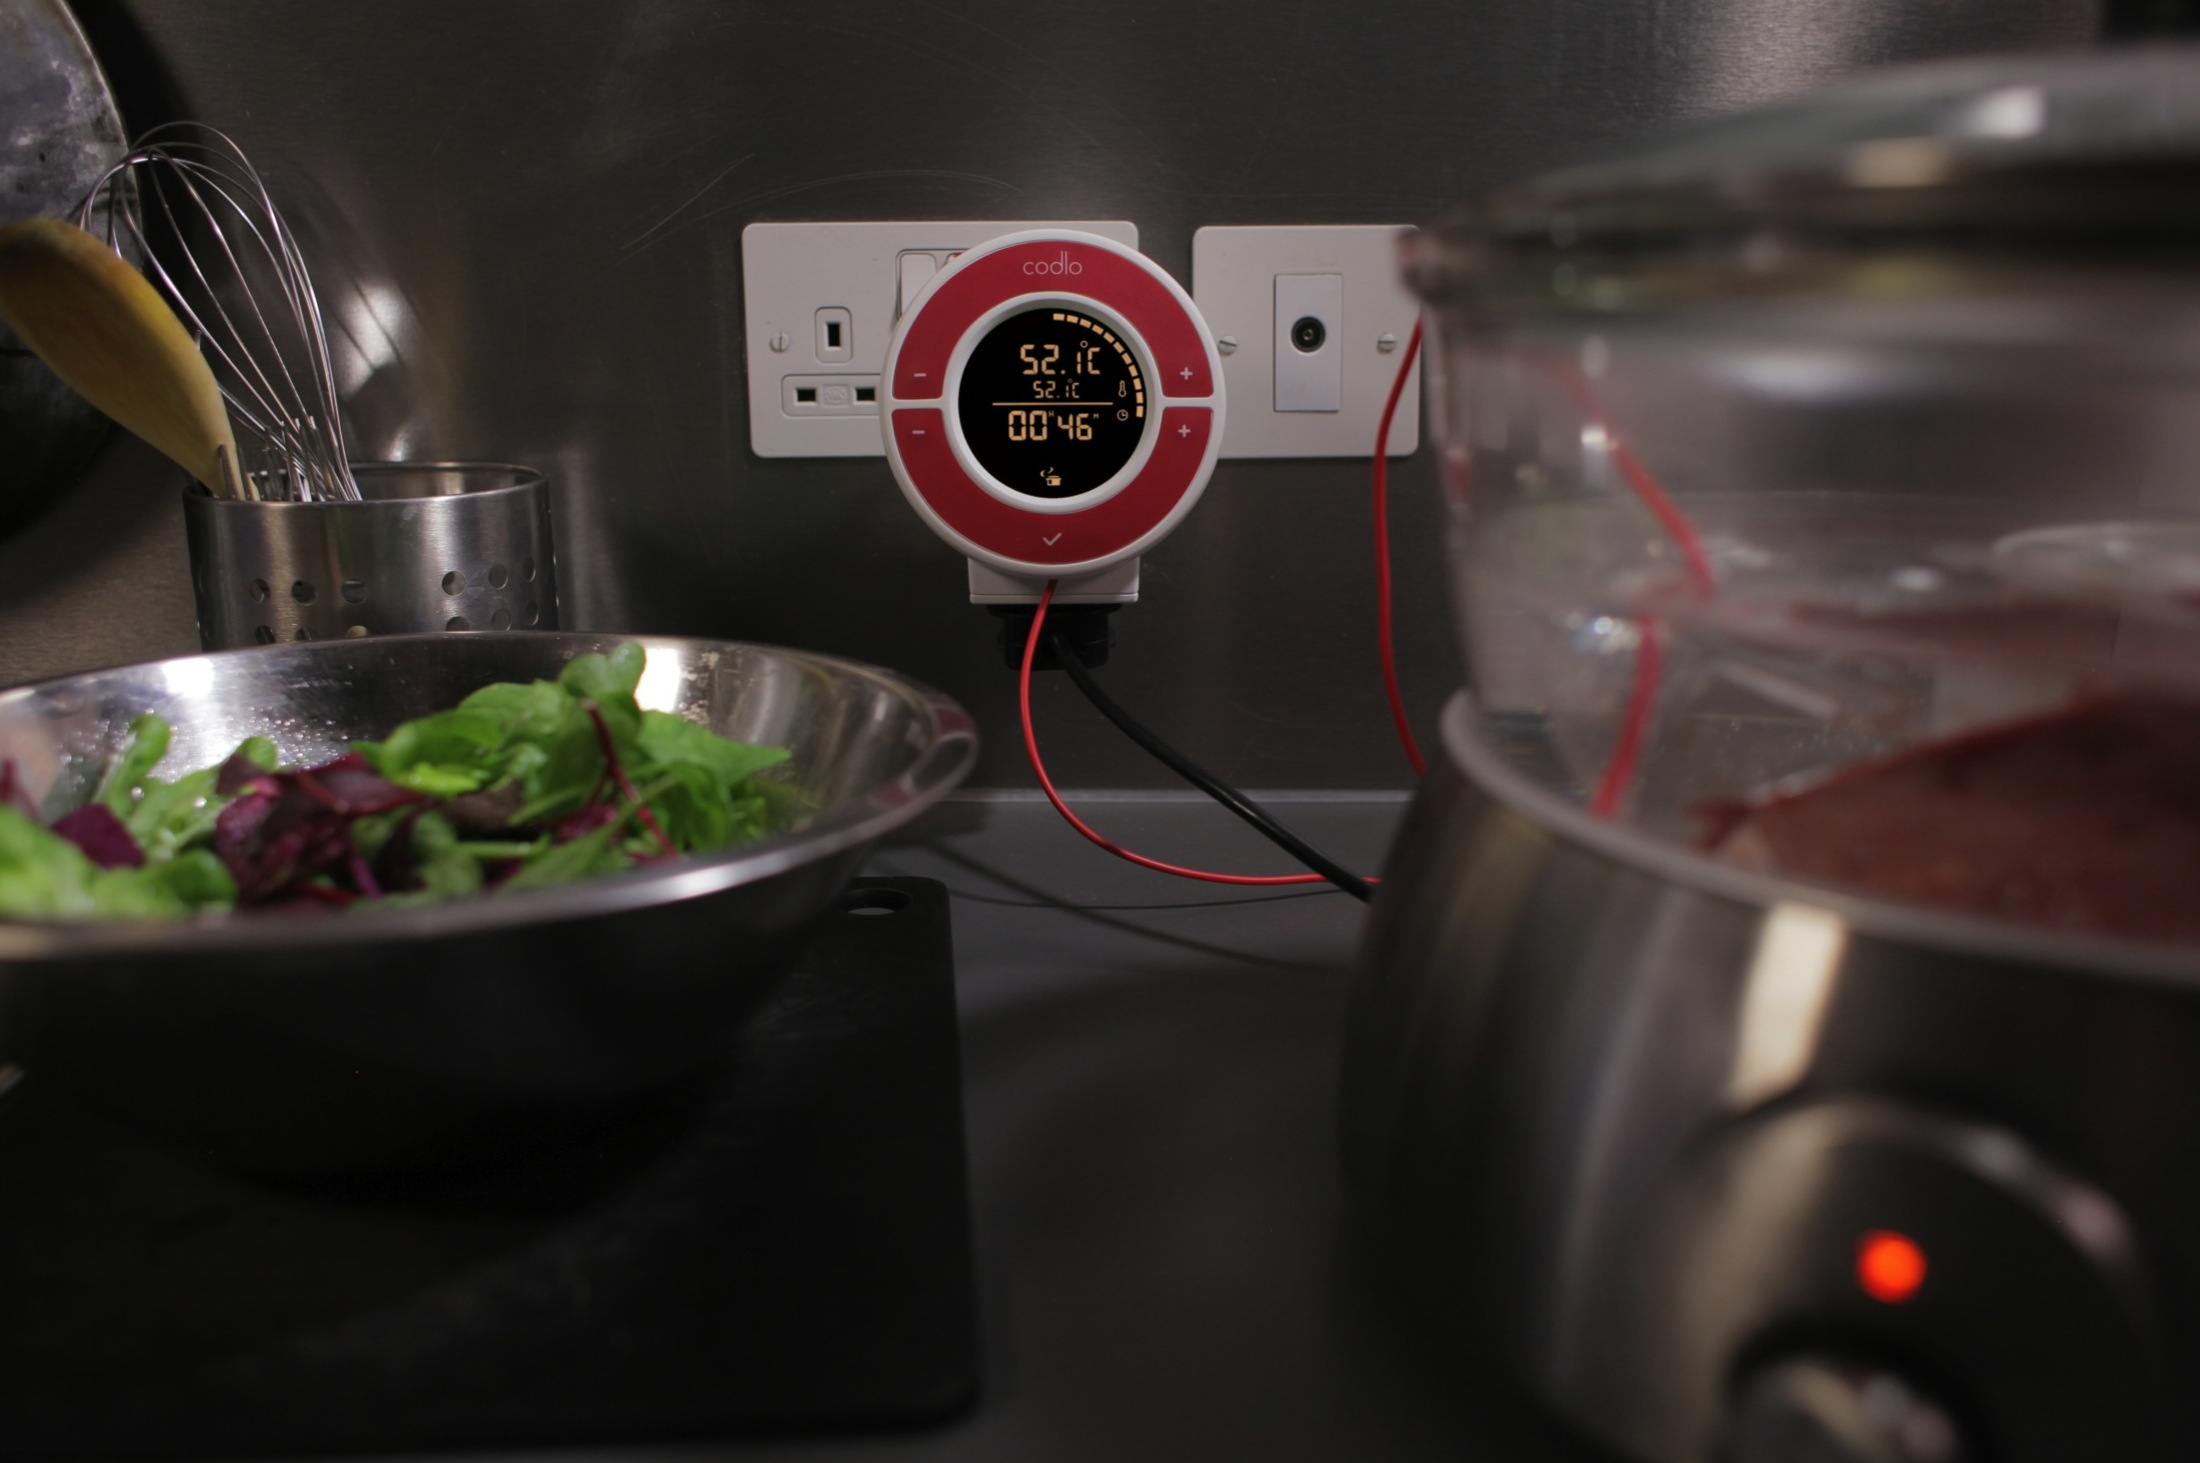 Look out Nomiku. Here Comes Codlo